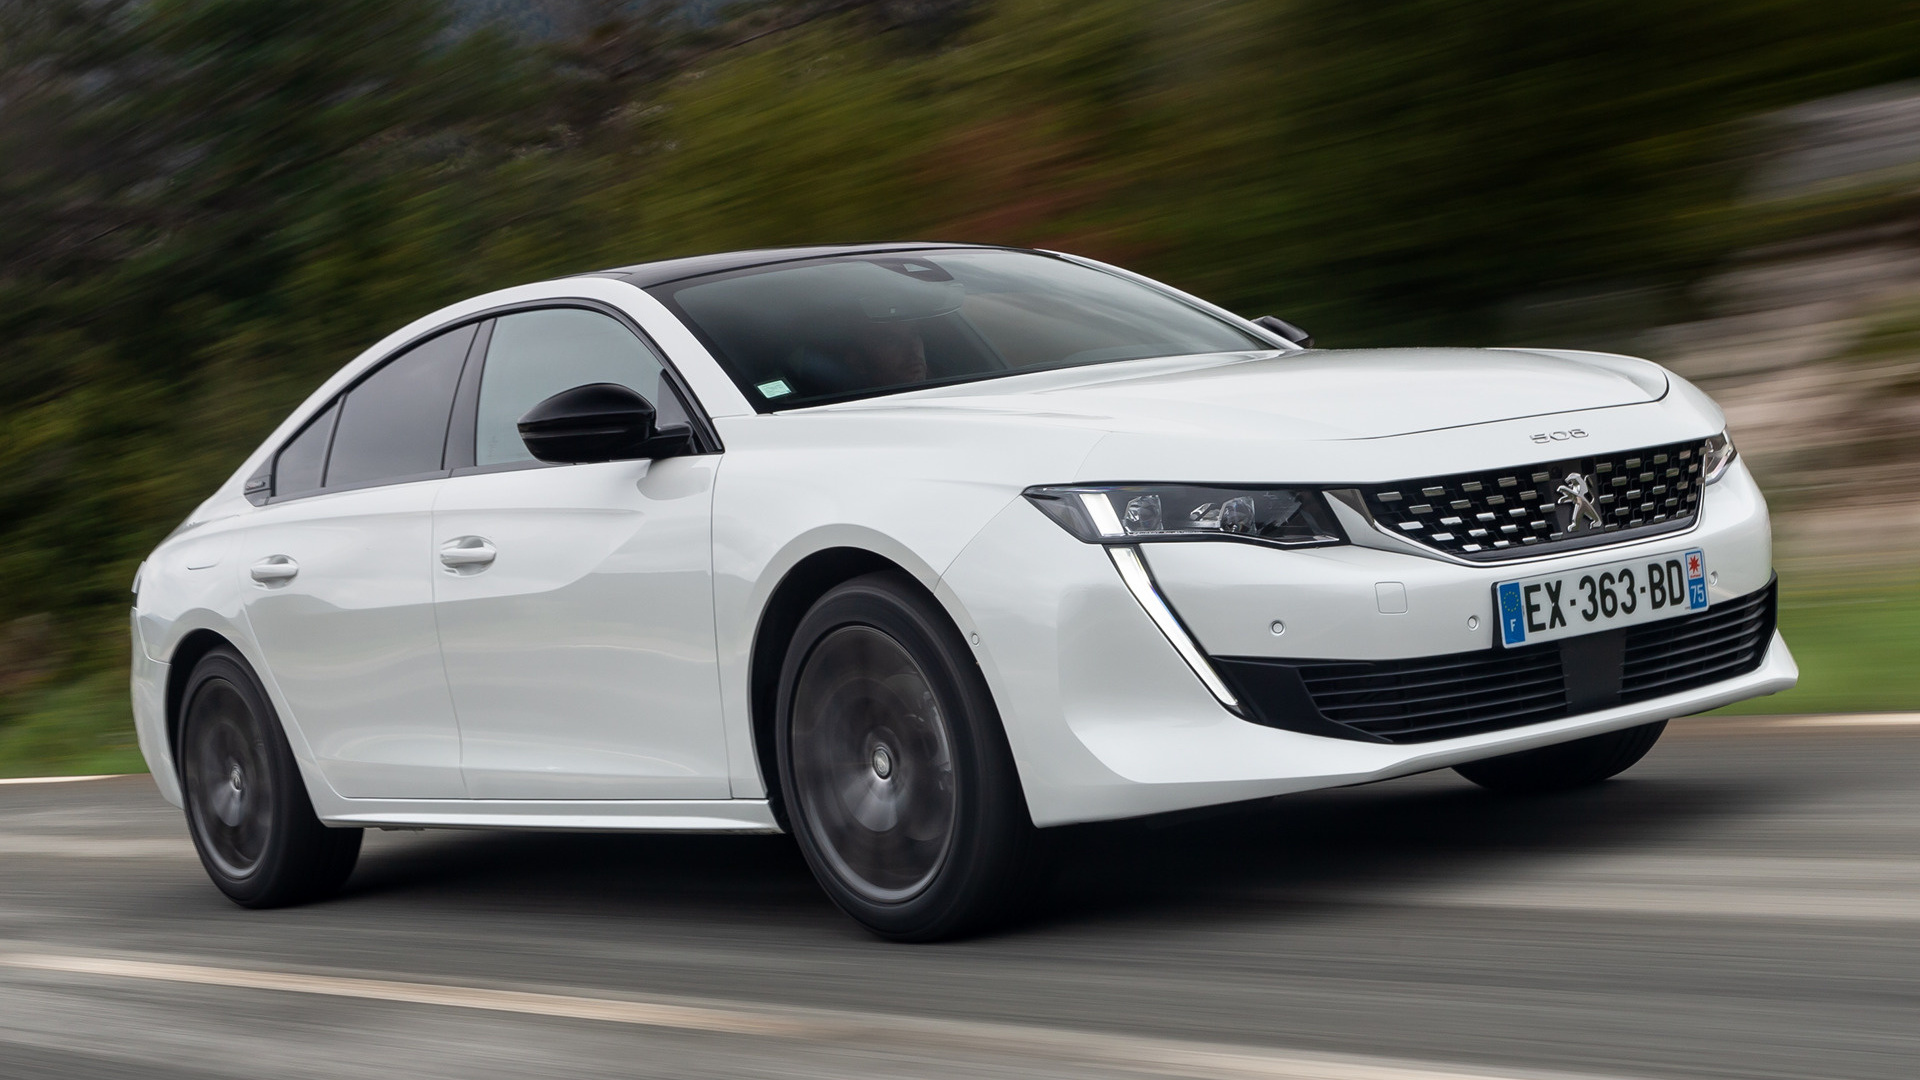 2018 Peugeot 508 GT Line - Wallpapers and HD Images | Car ...